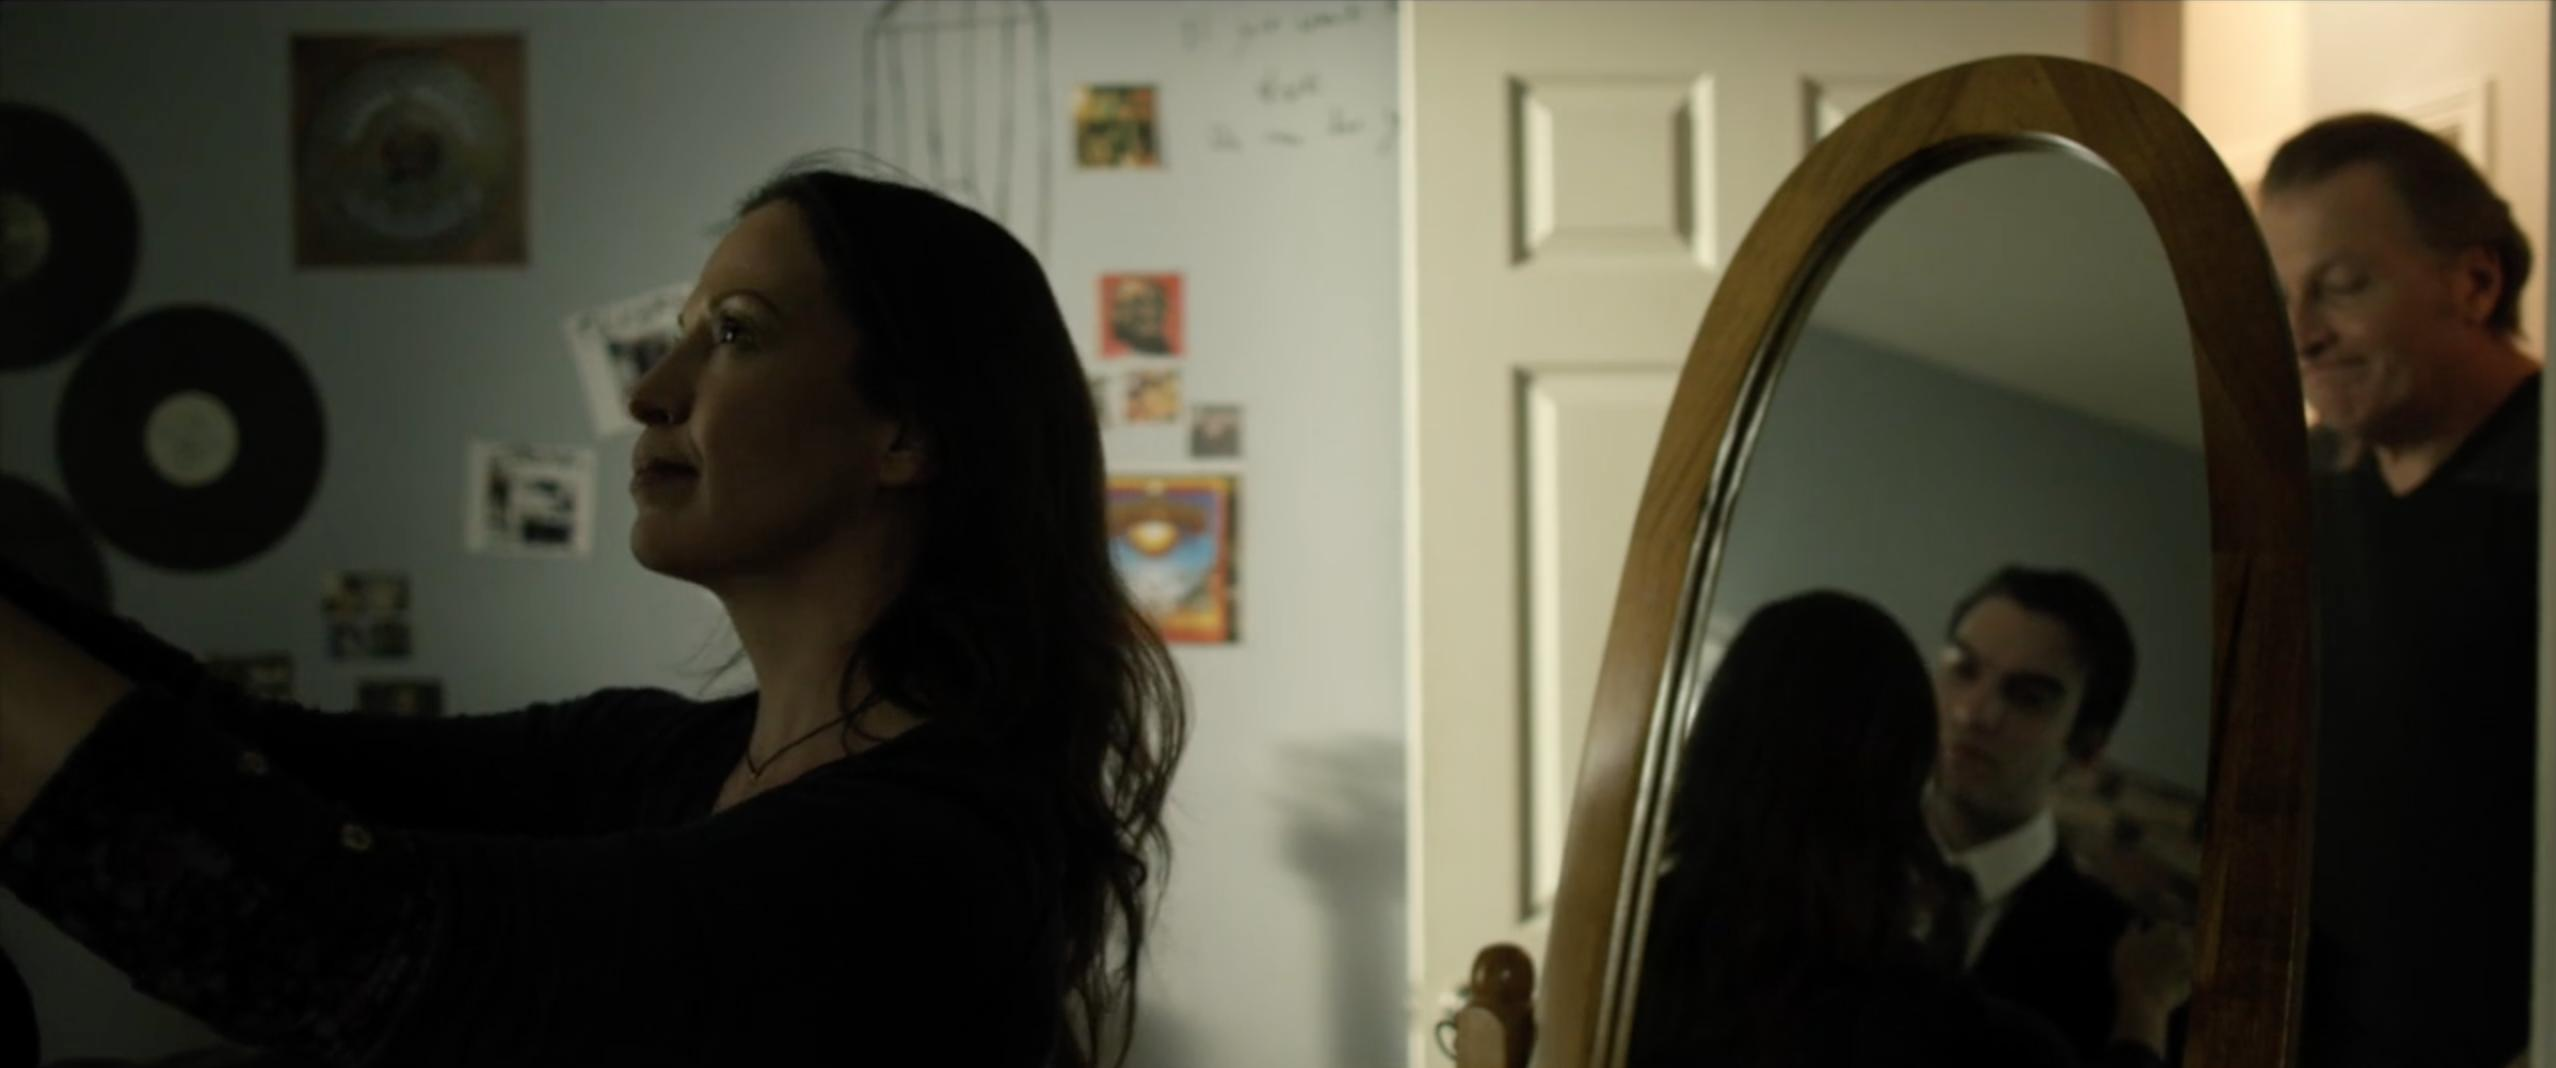 photo still from the short film ALMOST